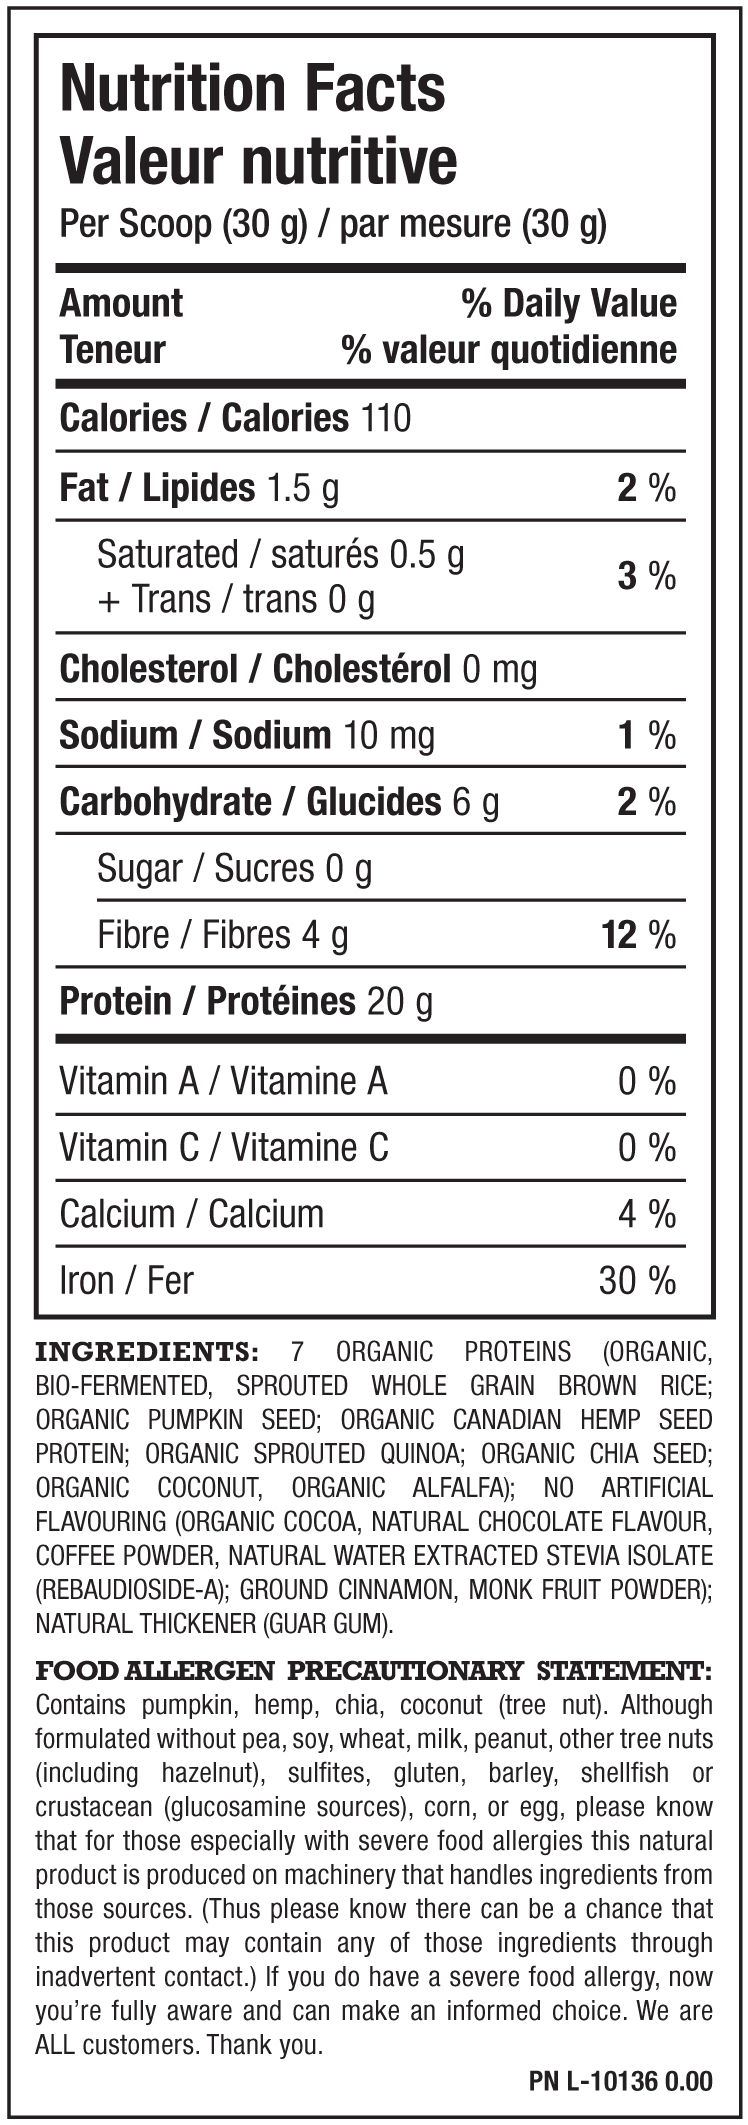 nutritionalfacts-vegepro7-chocolate.png